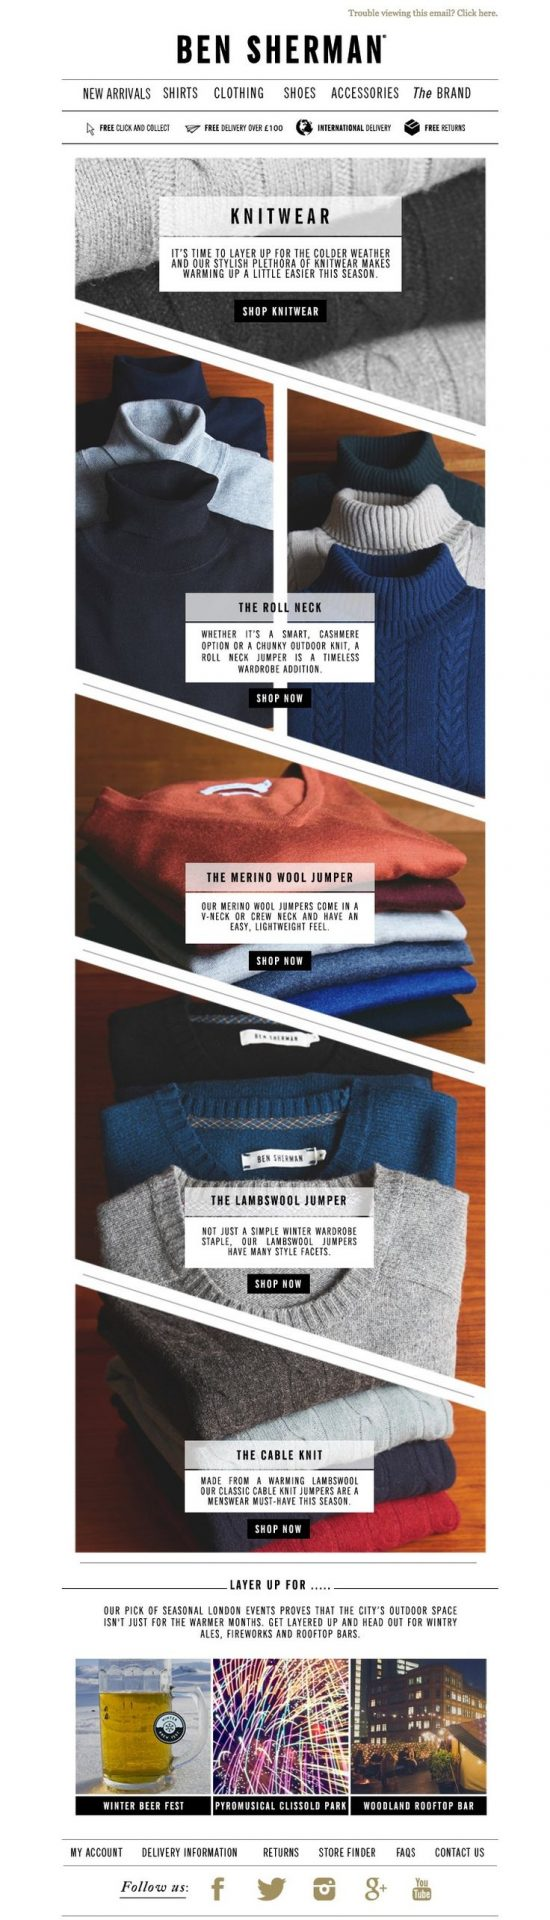 22 Excellent Ecommerce Email Templates Examples To Inspire Your Next Campaign